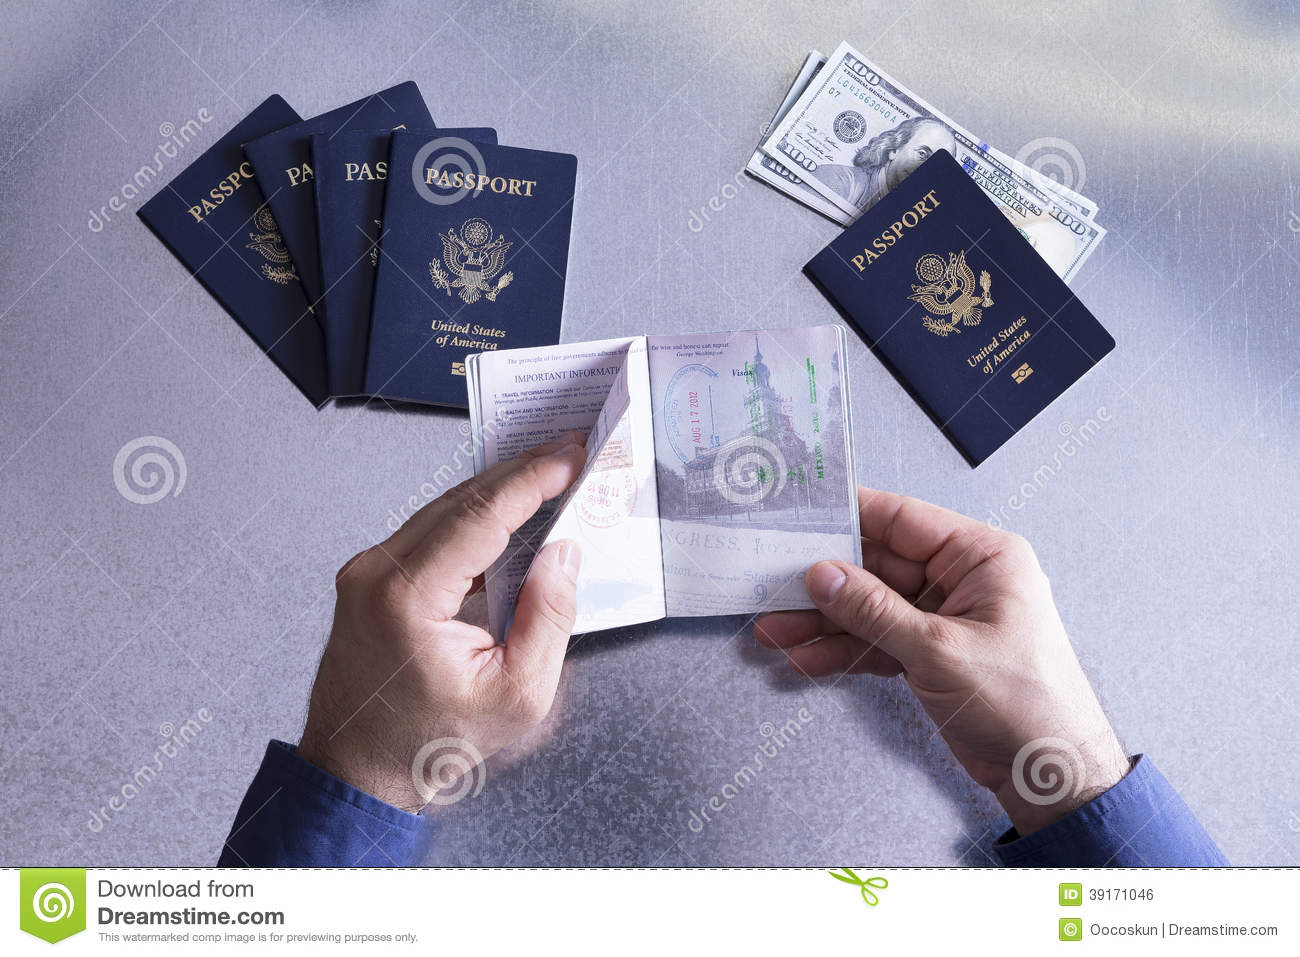 Customs or border official checking a passport